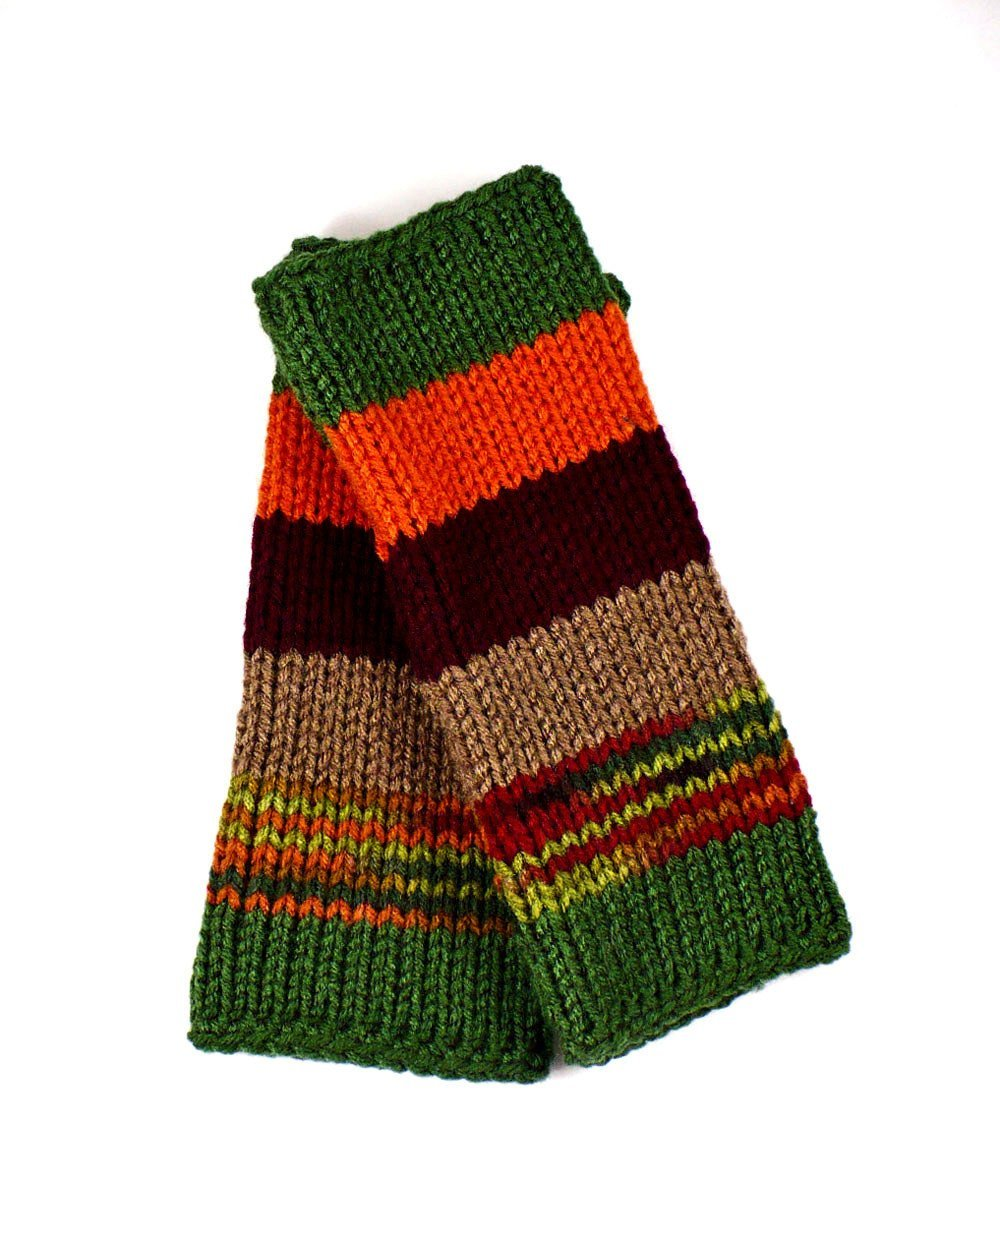 Nothingbutstring Gloves Knit Handmade Striped Forest Colored Fingerless Arm Warmers in Green Orange Burgundy Brown